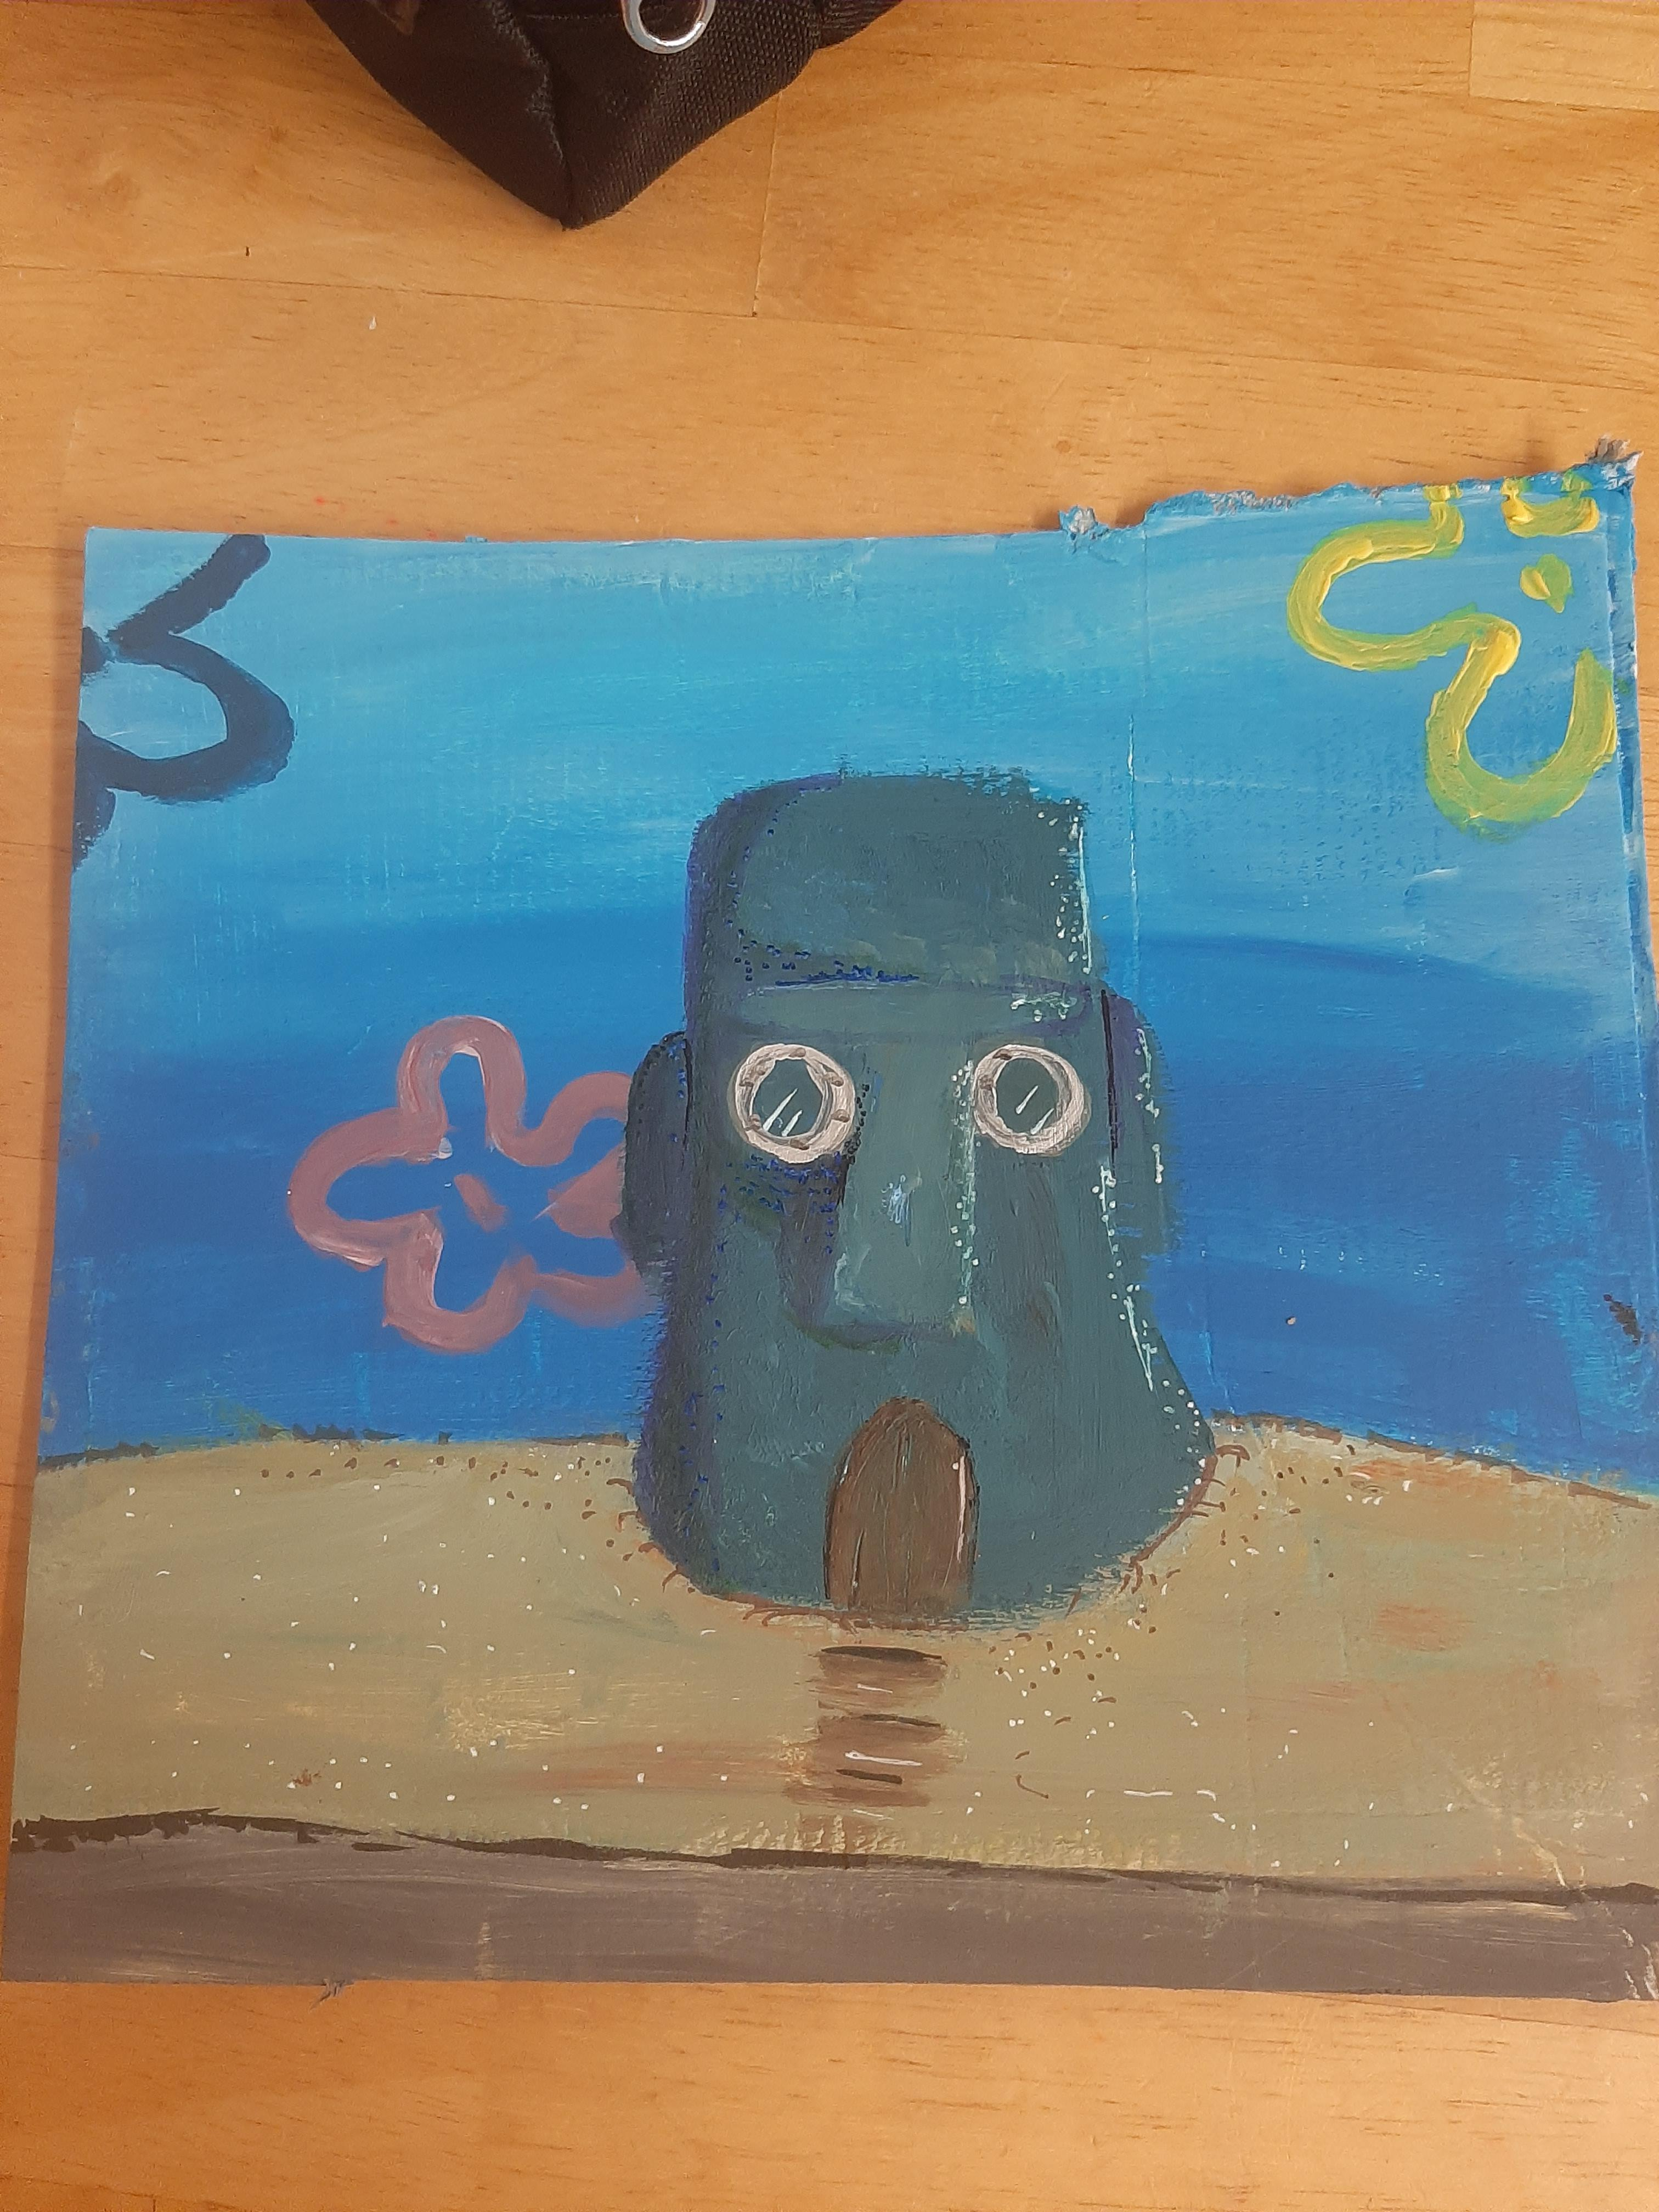 Spongebob House Painting : spongebob, house, painting, Second, Finished, Painting, Spongebob, Series, (spongebob, House, Almost, Done)